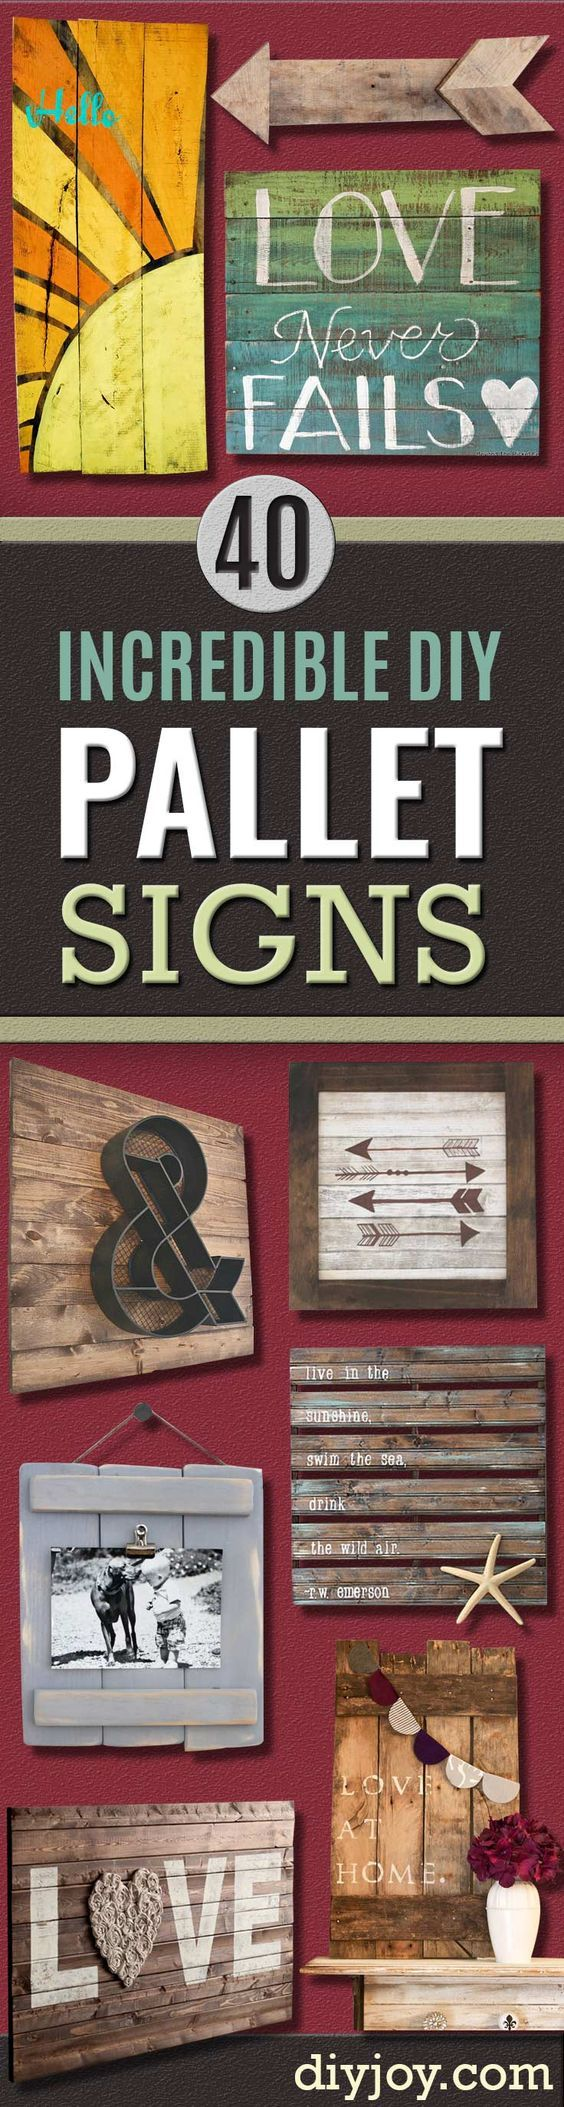 DIY Pallet sign Ideas - Cool Homemade Wall Art Ideas and Pallet Signs for Bedroom, Living Room, Patio and Porch. Creative Rustic Decor Ideas on A Budget: